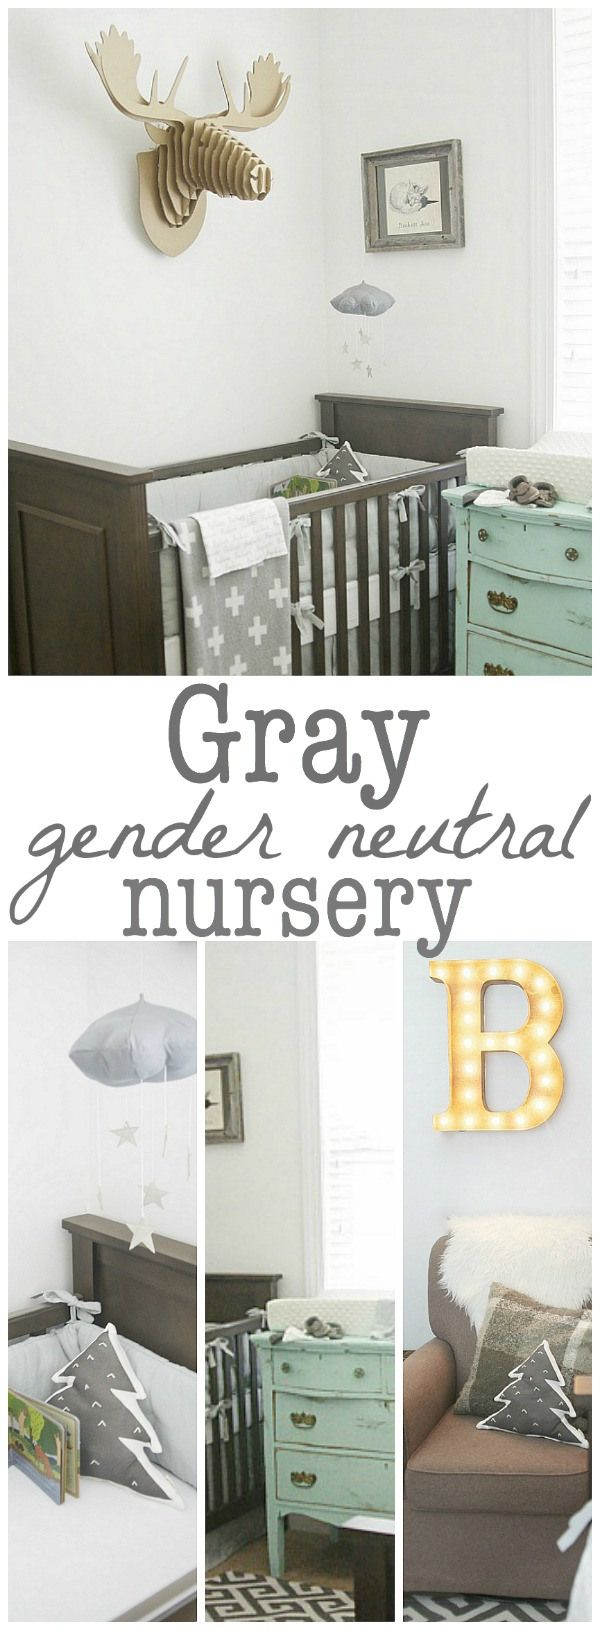 Gray Nursery - shared nursery inspiration & gender neutral! This is dreamy!